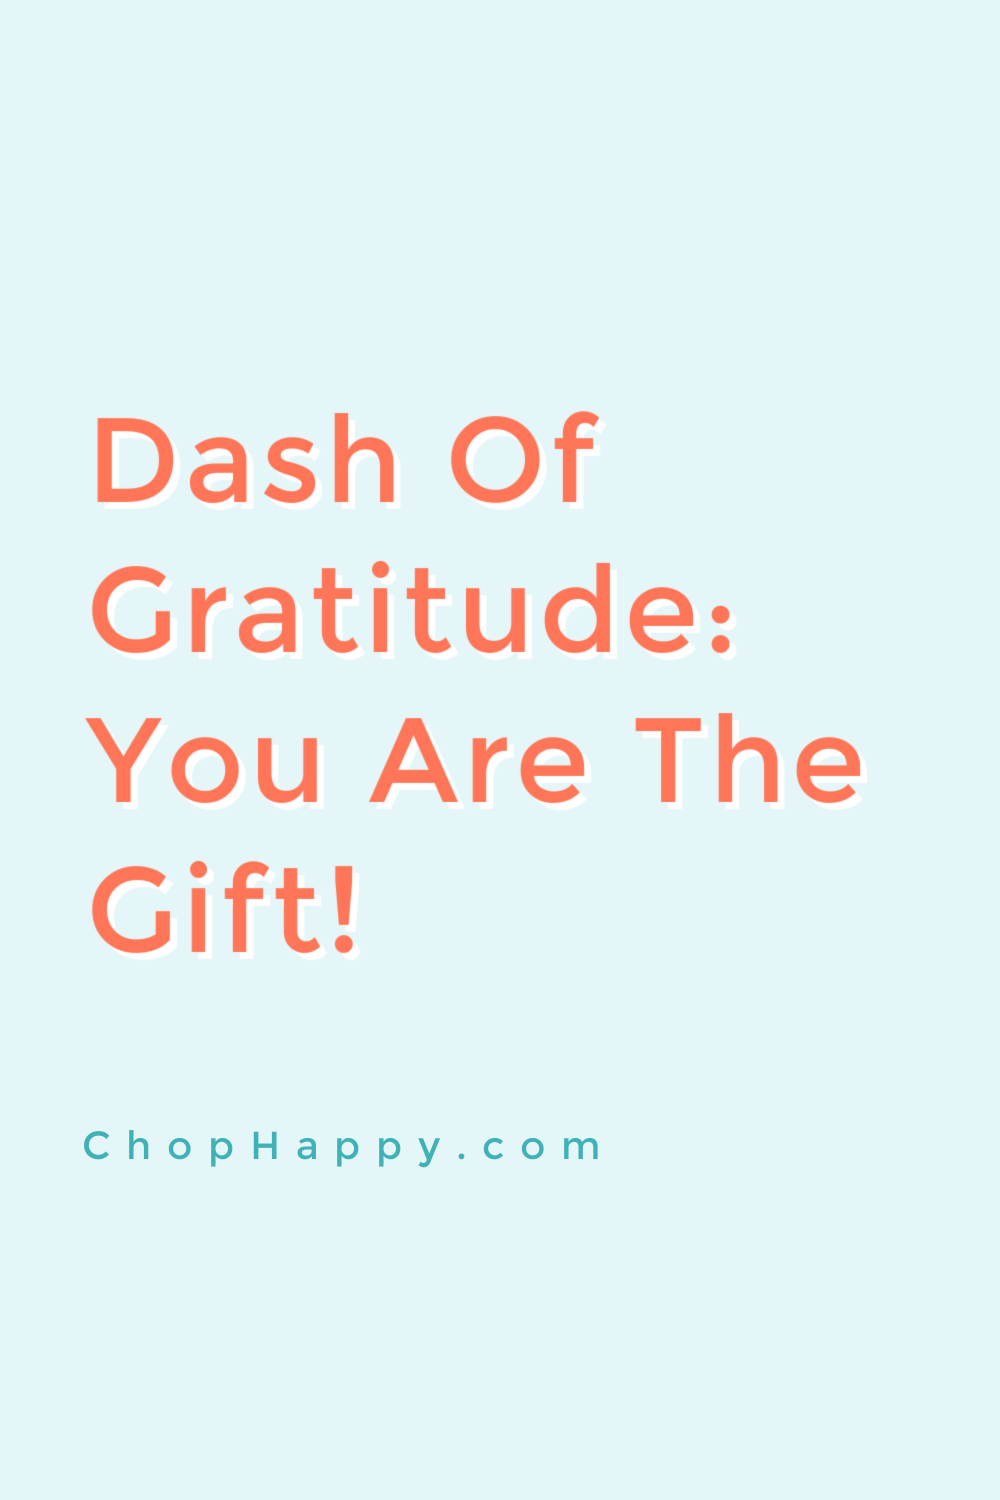 Dash of Gratitude: You Are The Gift. Use the law of attraction to give you an attitude of gratitude. Dream big knowing you are a gift and radiate positive vibes. www.ChopHappy.com #attitiudeofgratitude #gift